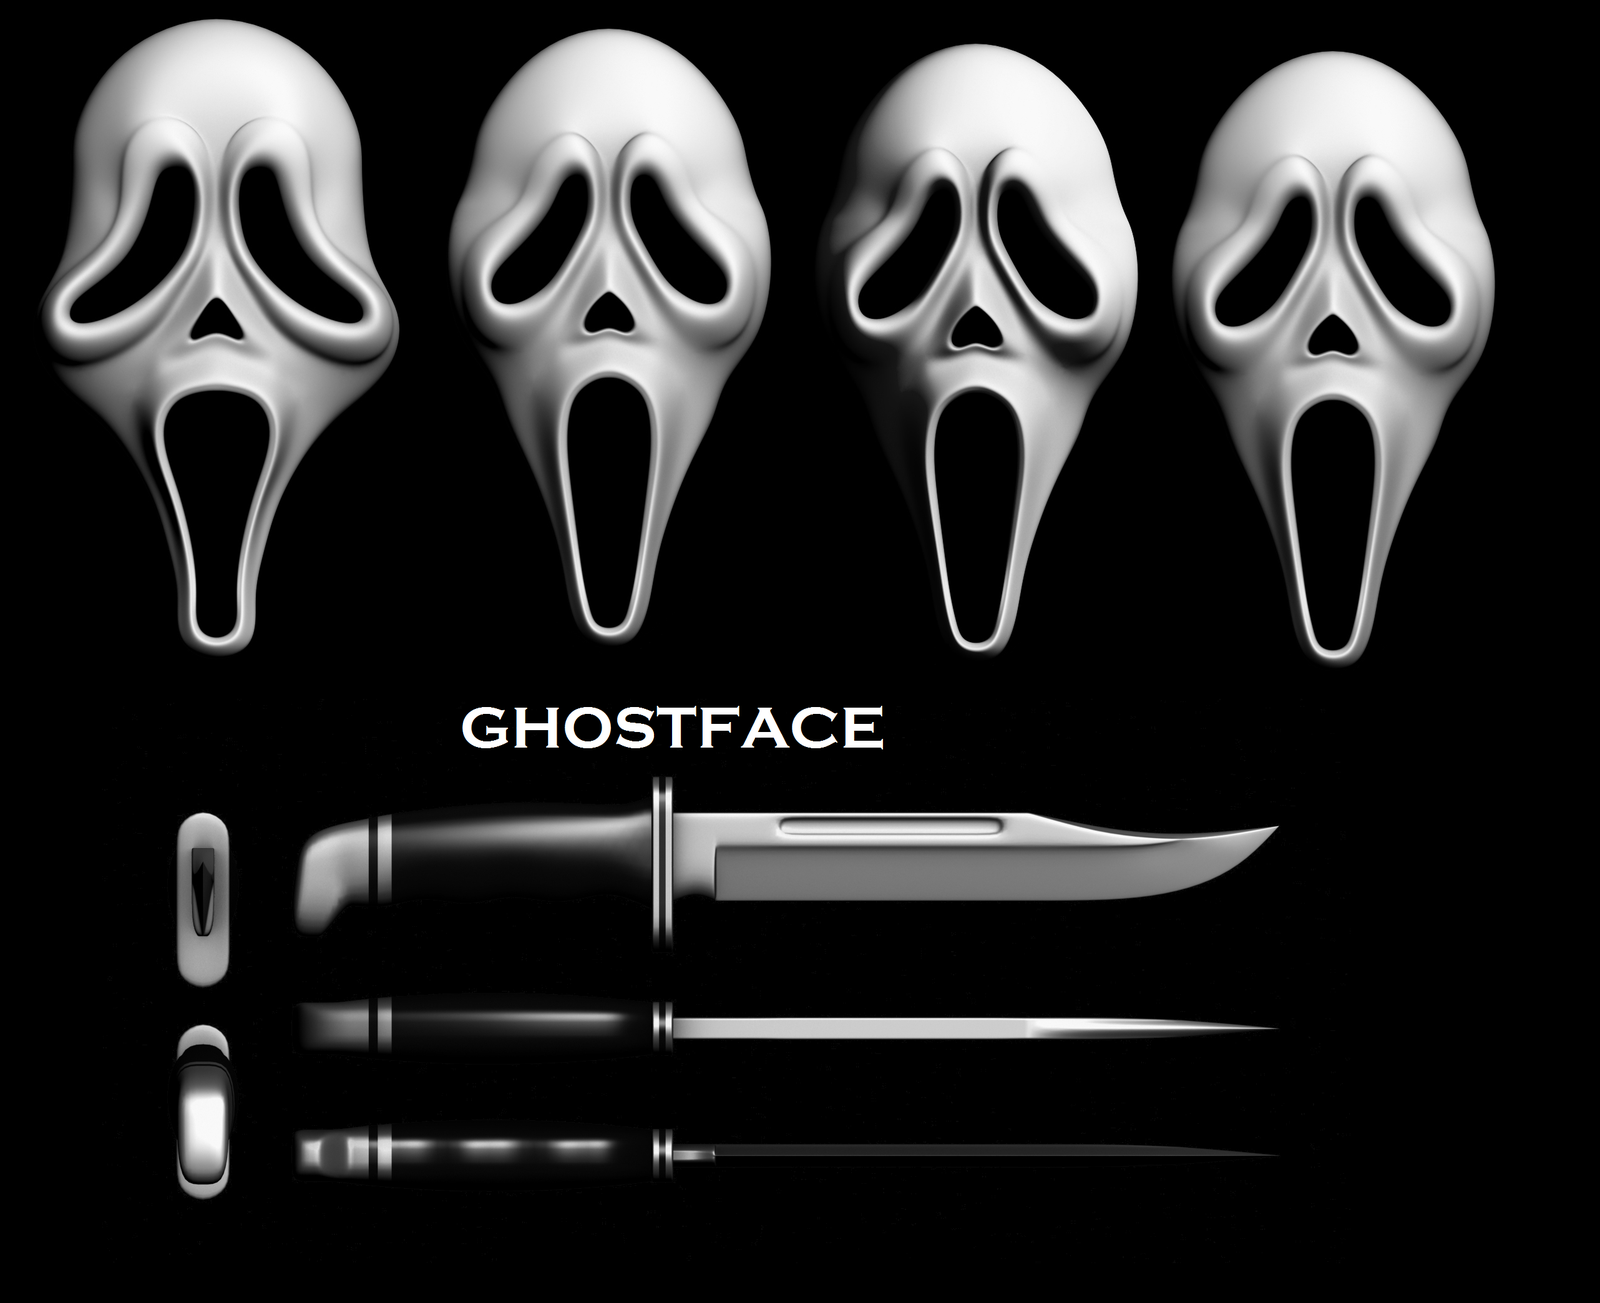 1600x1303 Best 45+ Ghostface Backgrounds on HipWallpaper | Ghostface ...